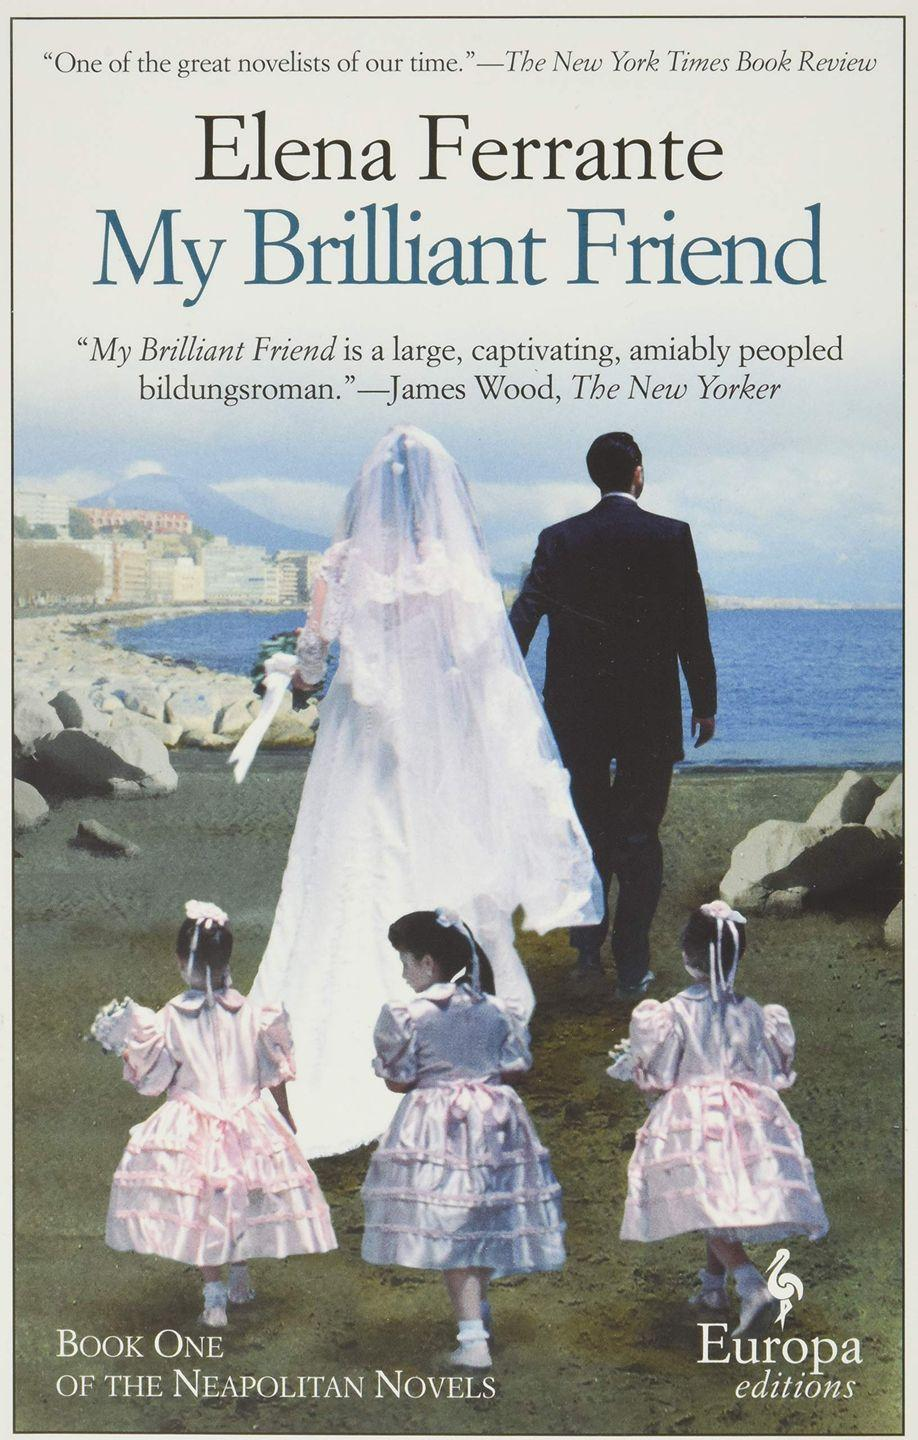 """<p>Set in a neighbourhood near post-war Naples, this blisteringly good read is a powerful evocation of poverty in Southern Italy, of family, love and friendship. The first in Ferrante's stunning Neapolitan Quartet, don't be surprised if you instantly order the next three instalments when you finish.</p><p><a class=""""link rapid-noclick-resp"""" href=""""https://www.amazon.co.uk/My-Brilliant-Friend-Neapolitan-Novels/dp/1609450787?tag=hearstuk-yahoo-21&ascsubtag=%5Bartid%7C1927.g.36697675%5Bsrc%7Cyahoo-uk"""" rel=""""nofollow noopener"""" target=""""_blank"""" data-ylk=""""slk:SHOP NOW"""">SHOP NOW</a></p>"""